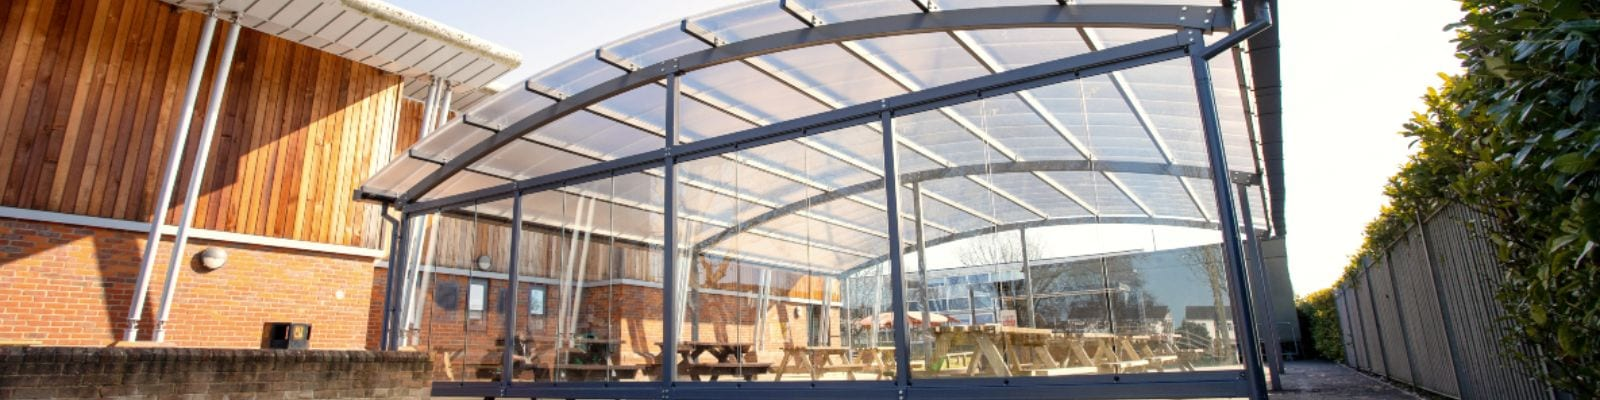 Canopy with sides at Lincroft Academy